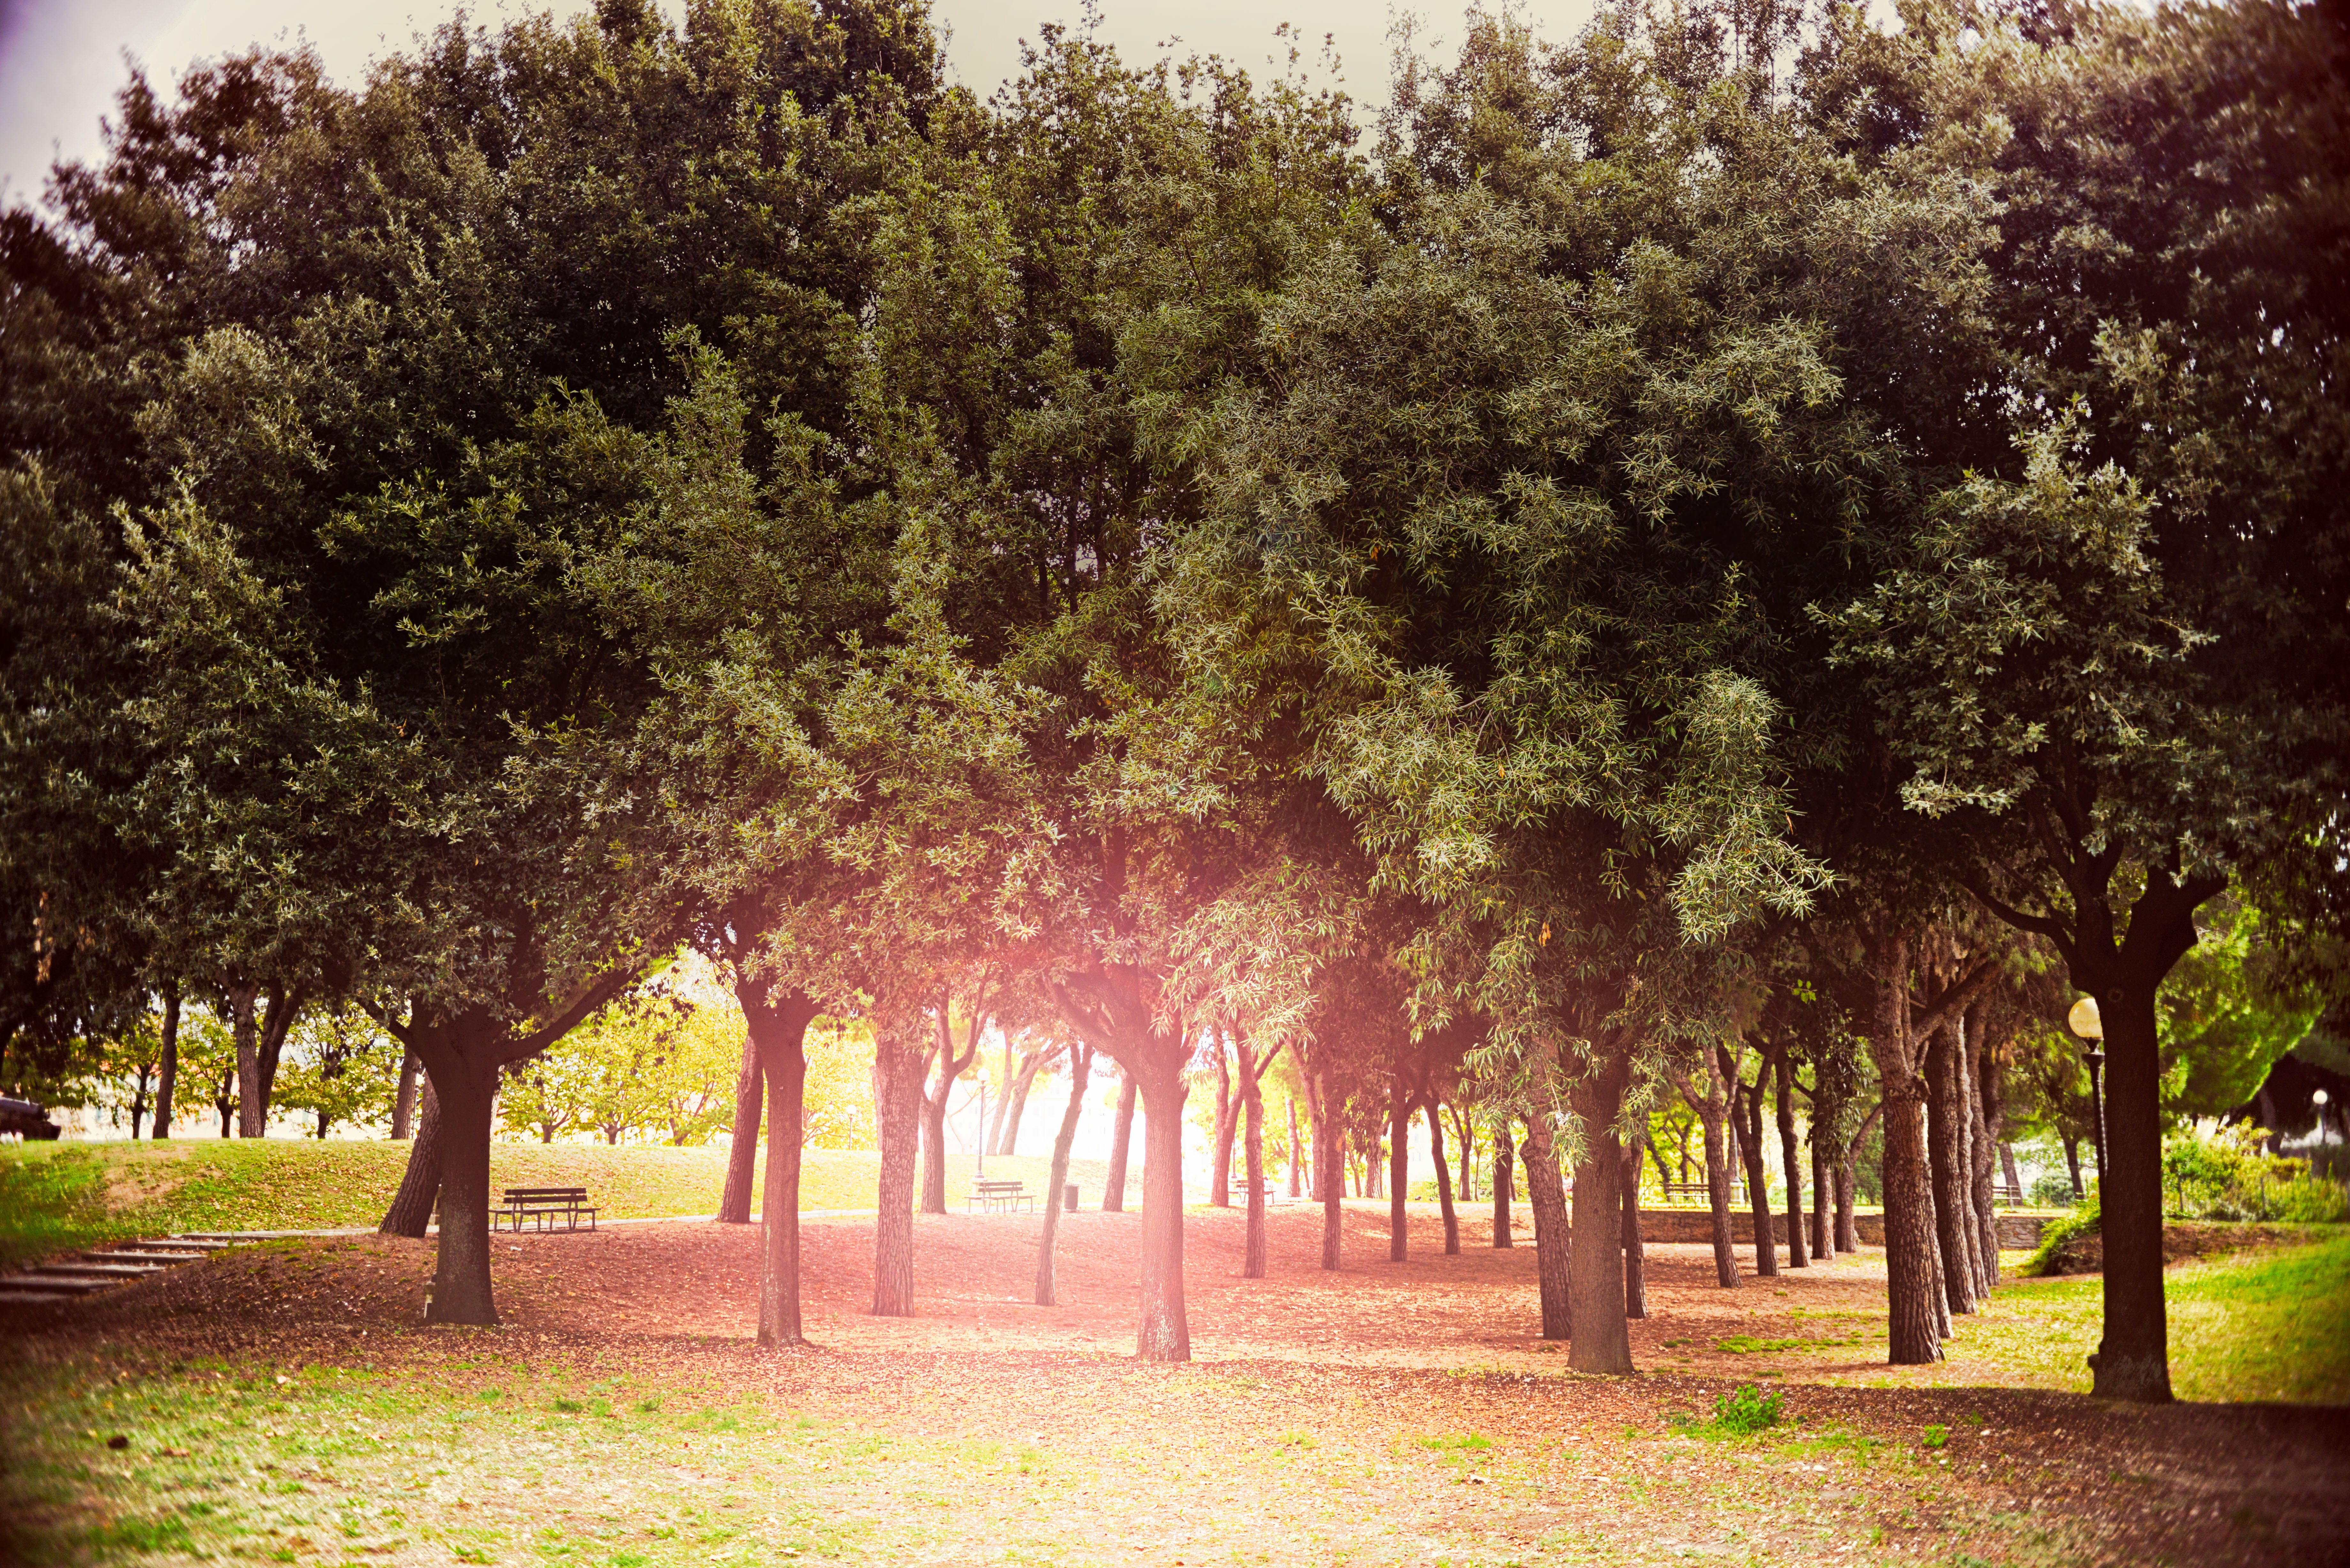 Benches Under Trees